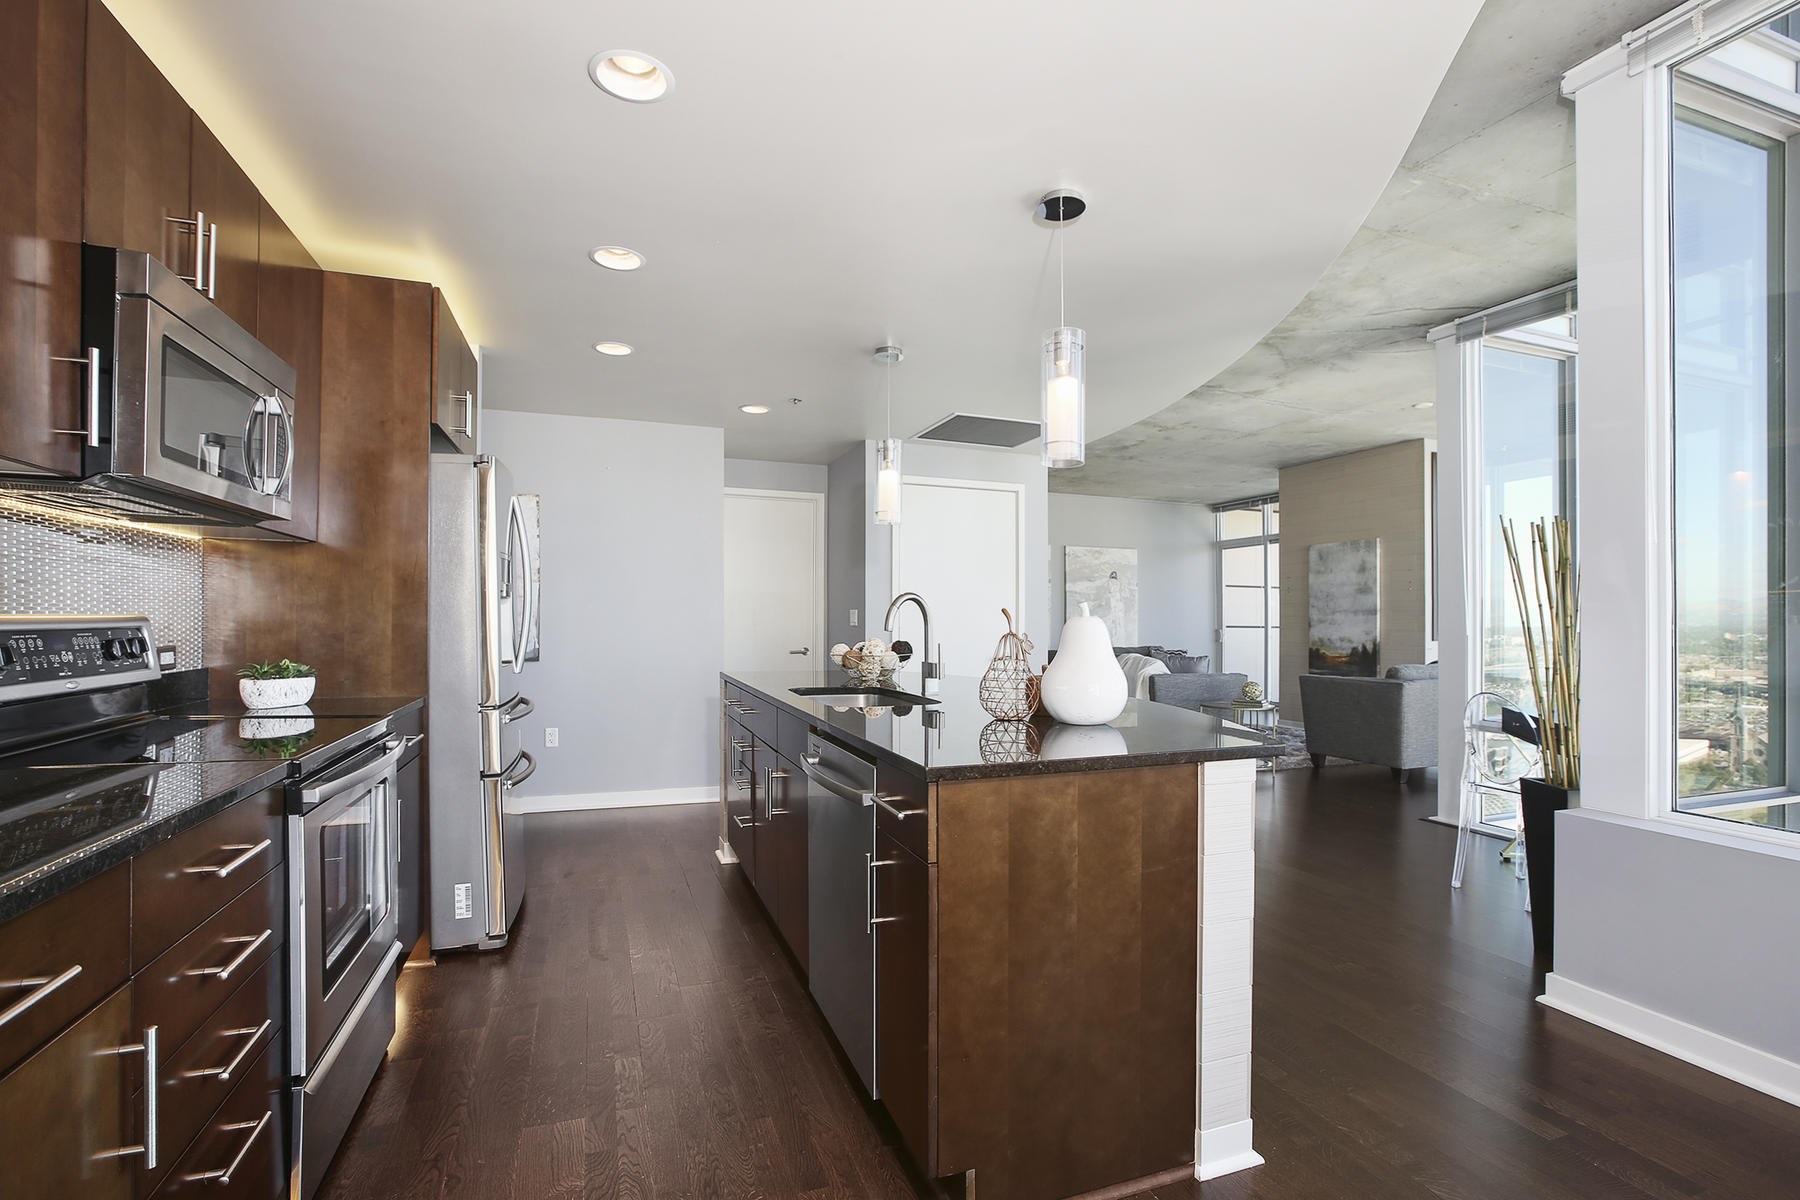 Additional photo for property listing at Panoramic Western and Southern Views 891 14th Street Unit 2301 Denver, Colorado 80202 United States